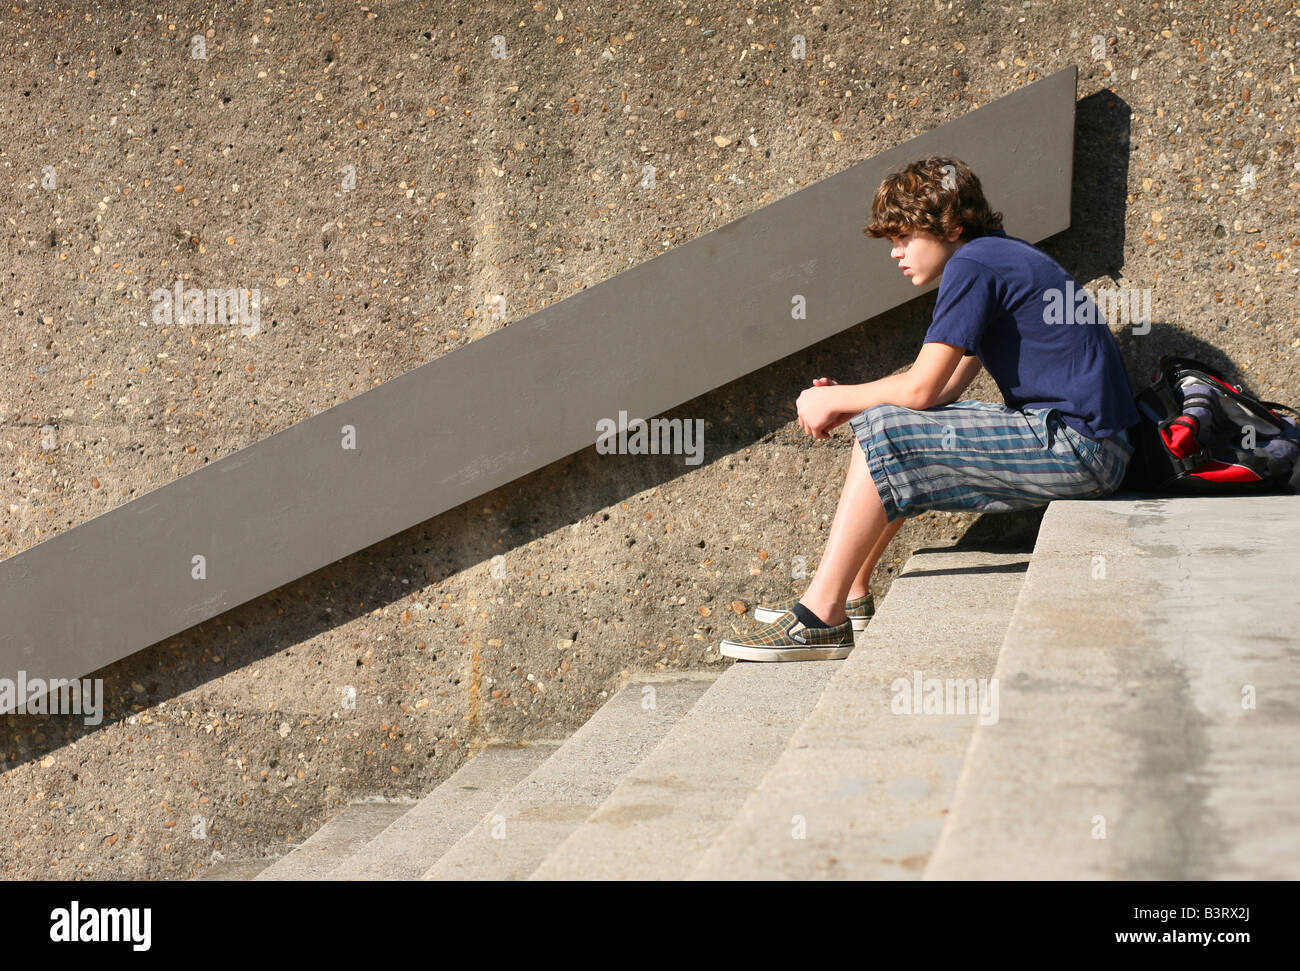 A Pre Adolescent Young Boy Sits At The Top Of Cement Stairs Hunched